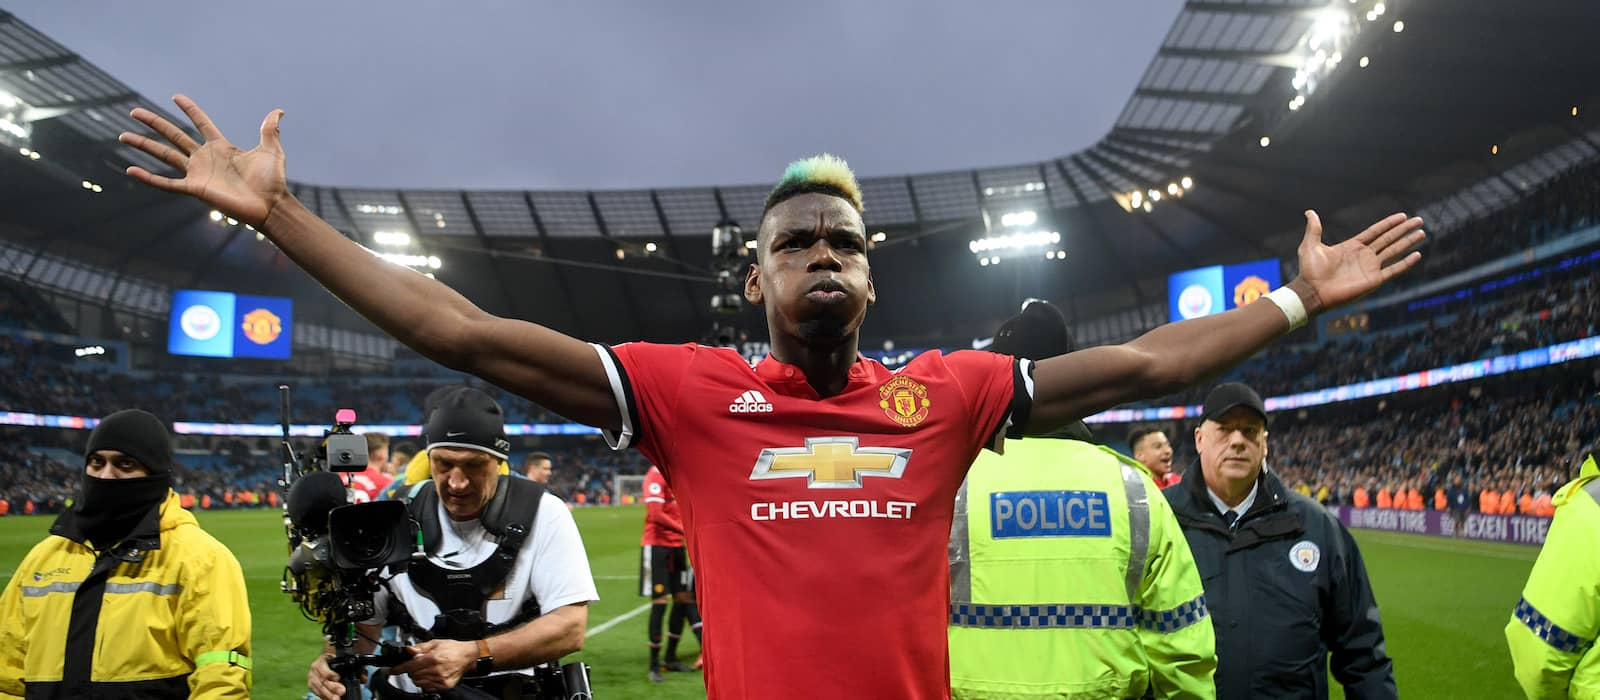 Manchester United are the next victim of Barcelona's underhand tactics with Paul Pogba